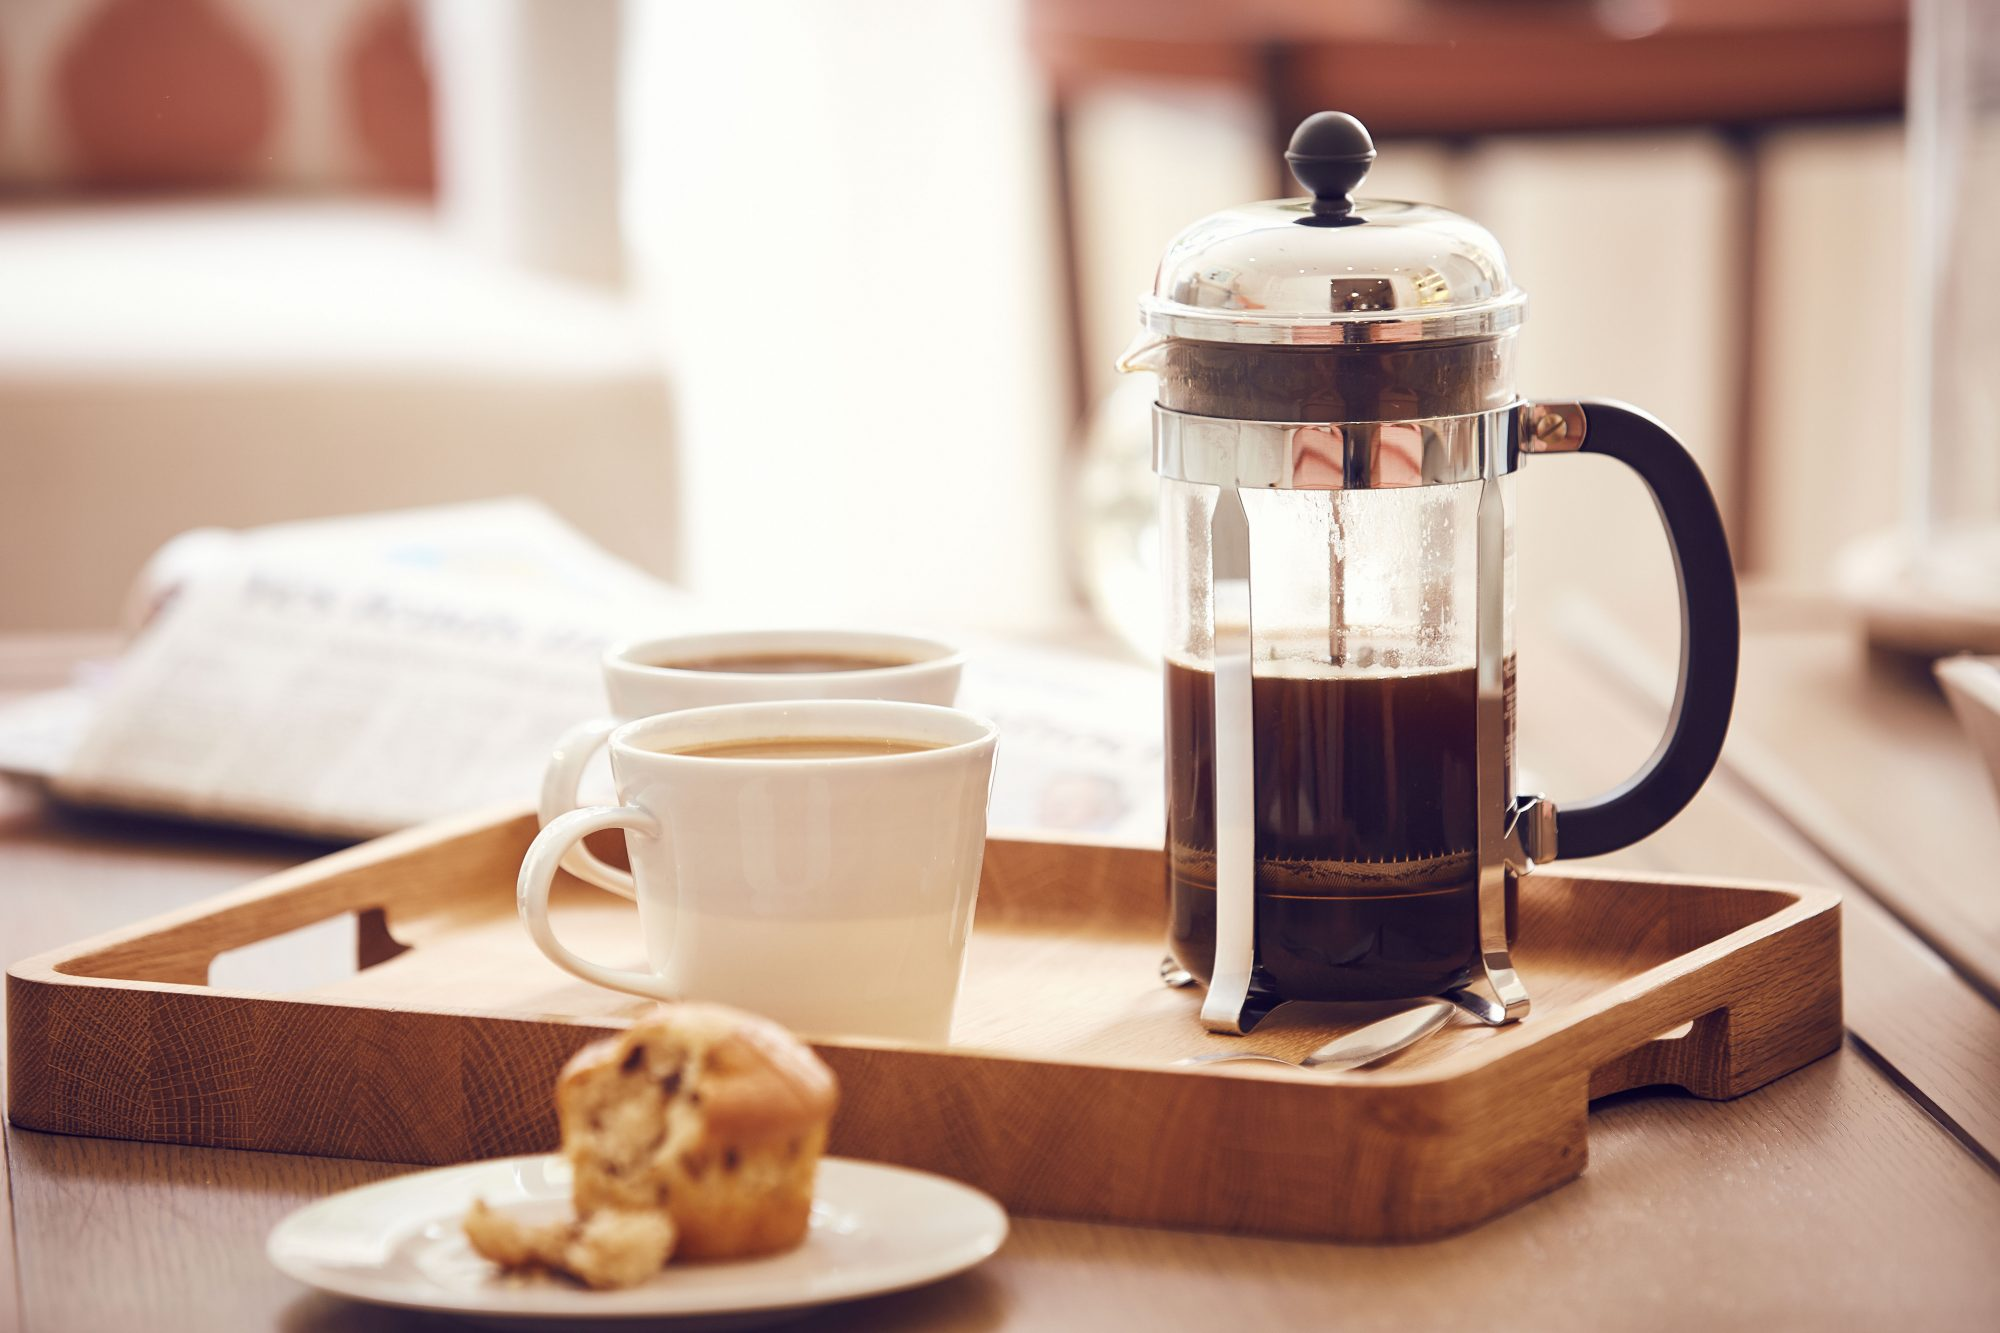 French Press Coffee Maker on breakfast tray with mugs of coffee